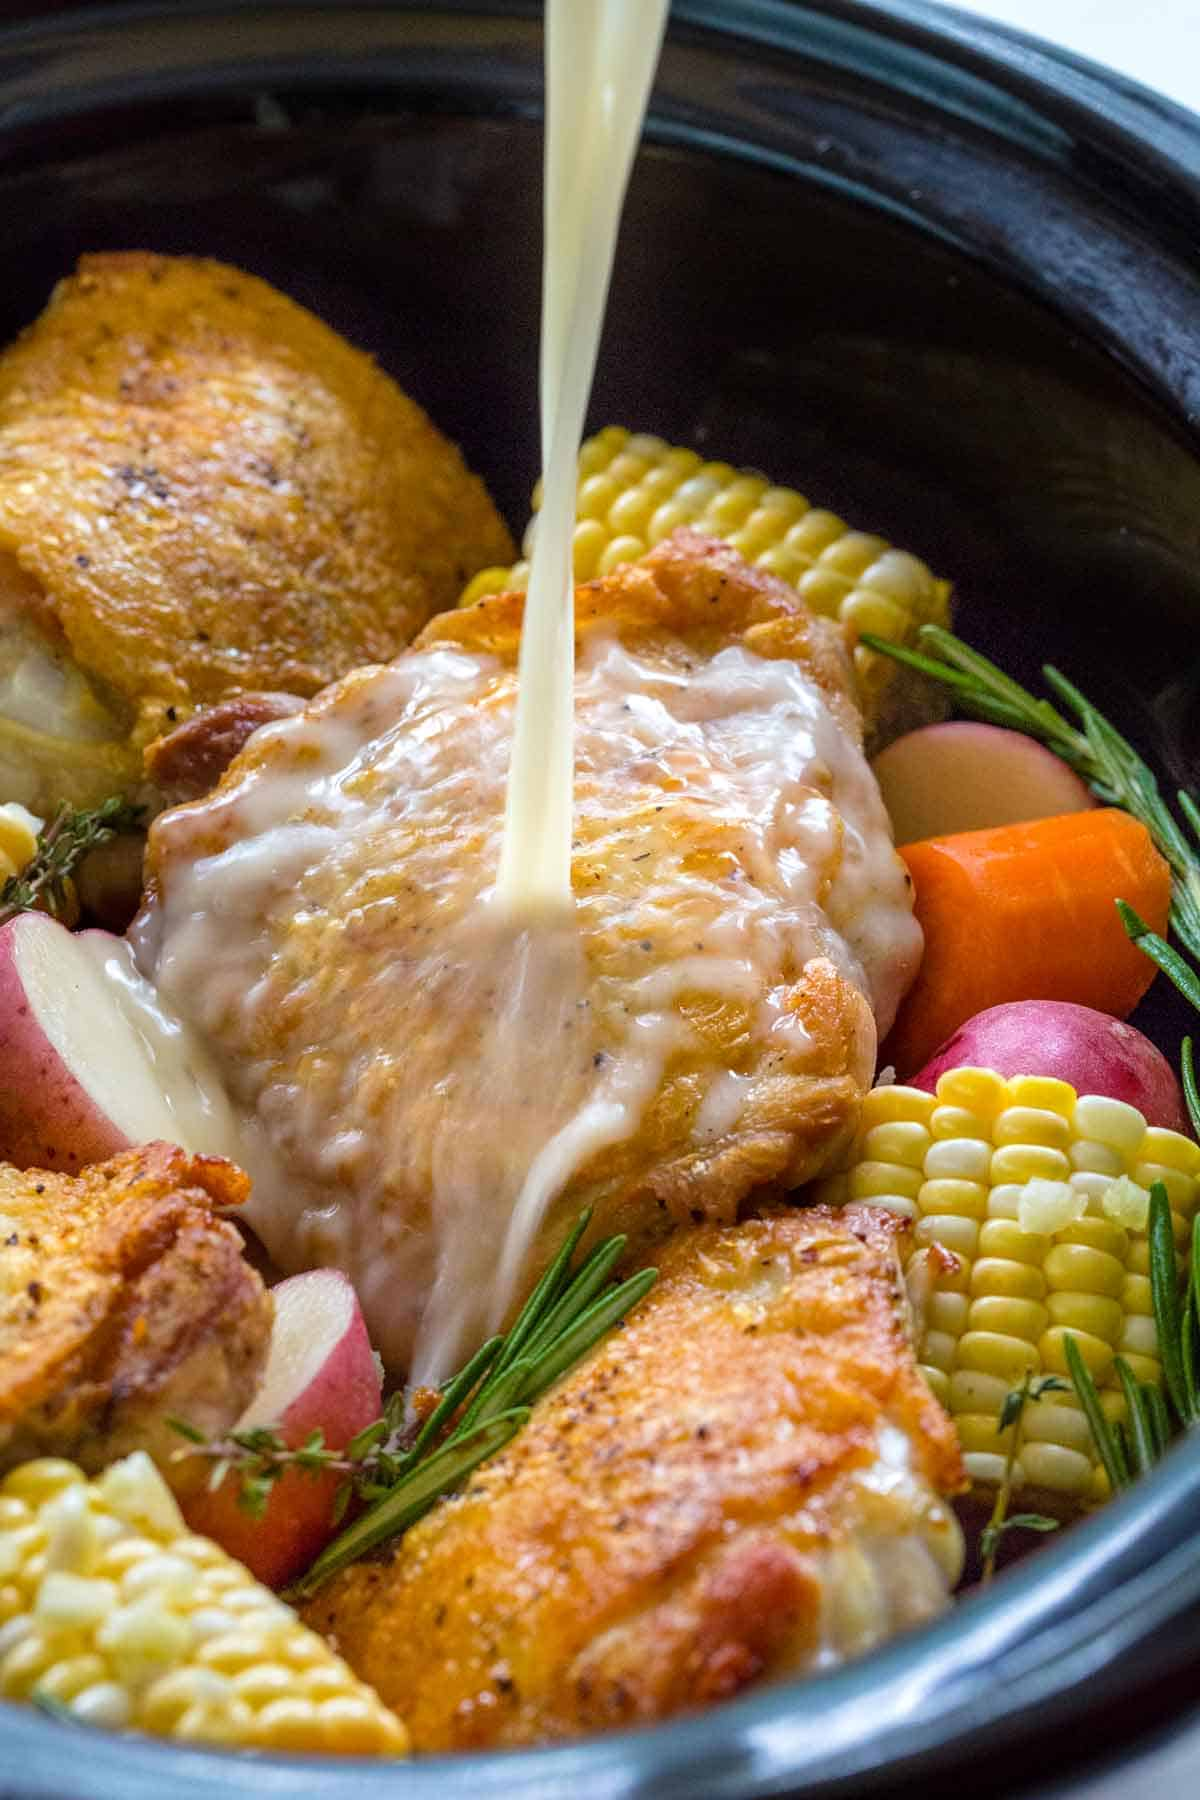 lemon sauce being poured over top chicken that is inside a slow cooker